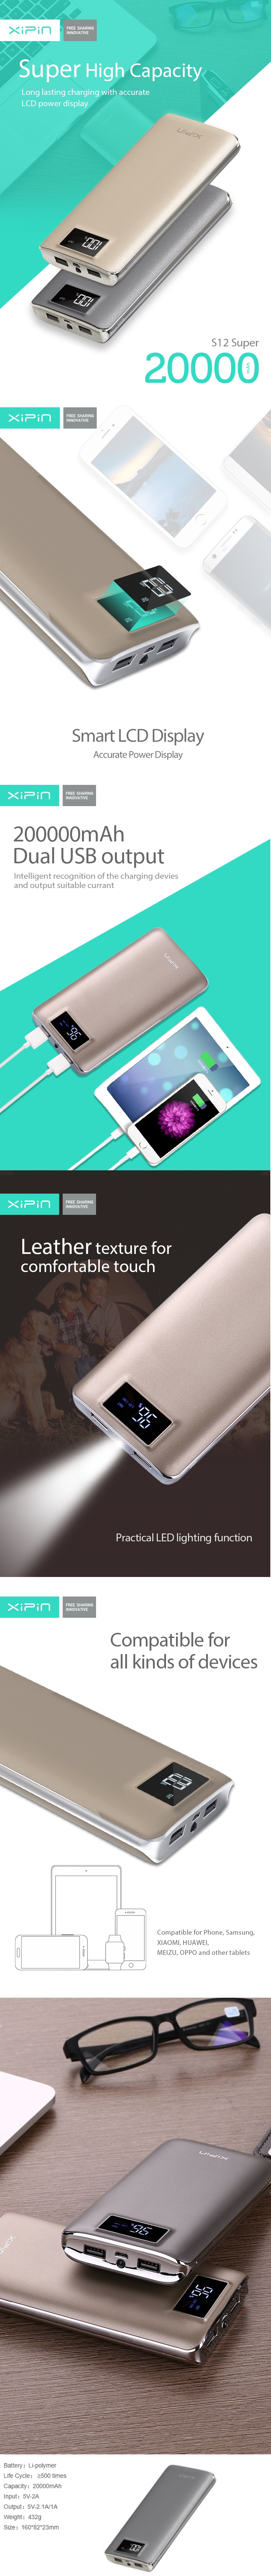 A large marketing image providing additional information about the product XiPin S12 Super 20000mAh 5v 2A Power Bank w/ LCD Display - Grey - Additional alt info not provided